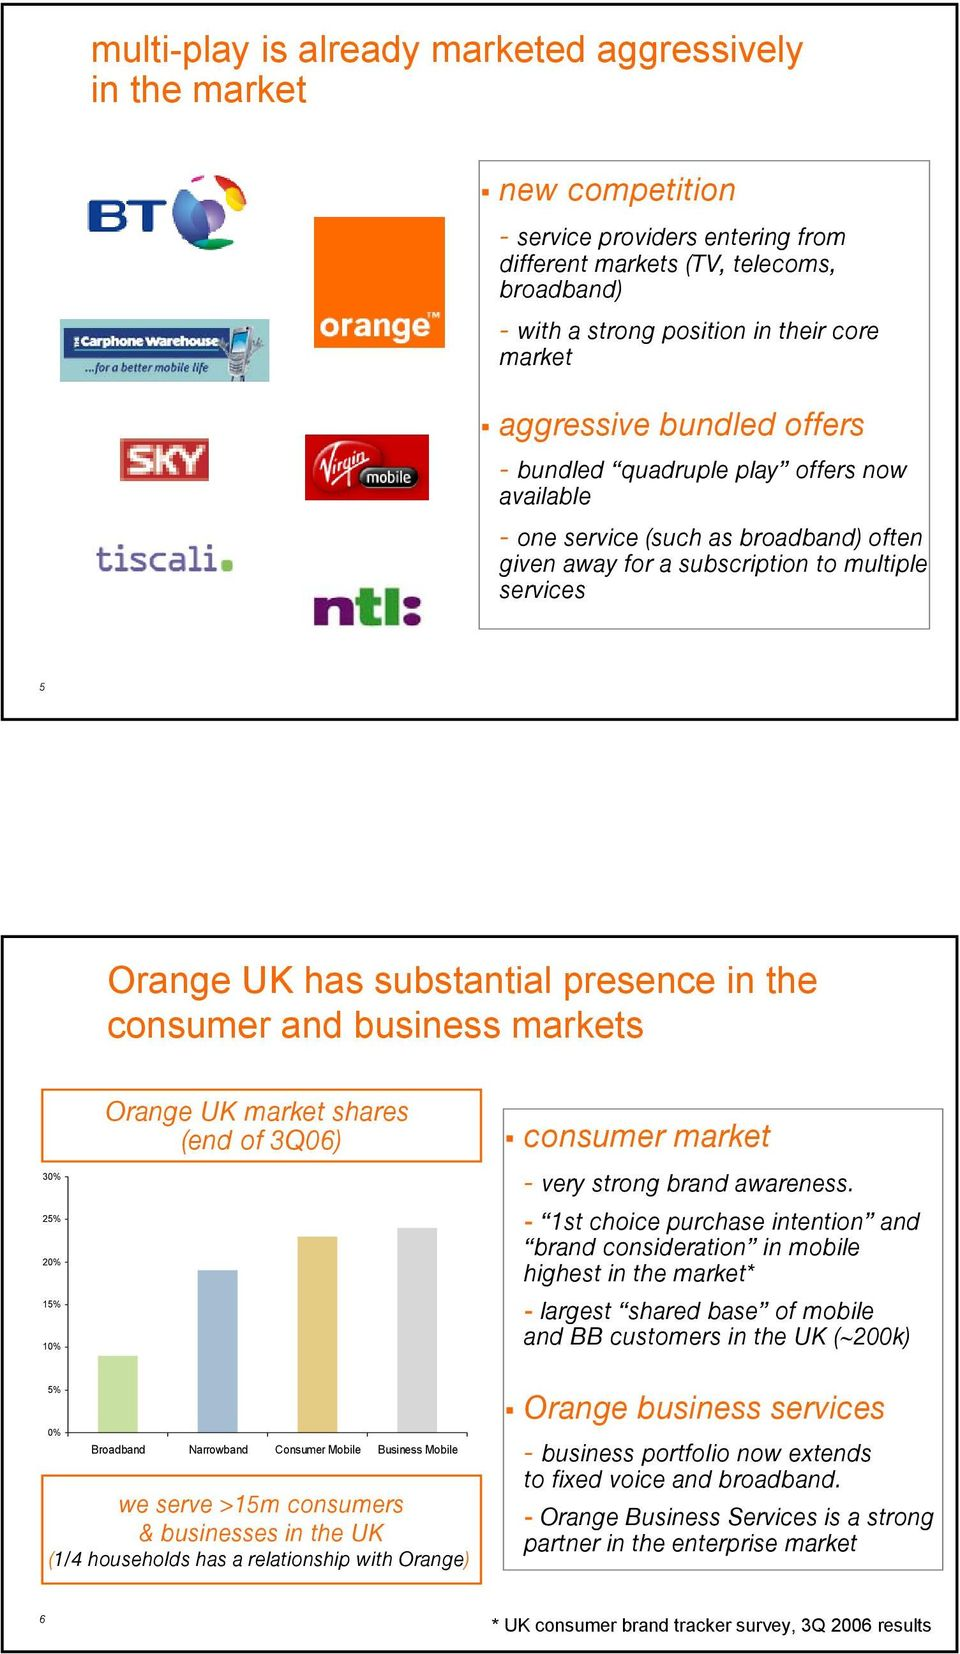 in the consumer and business markets 30% 25% 20% 15% 10% Orange UK market shares (end of 3Q06) consumer market - very strong brand awareness.